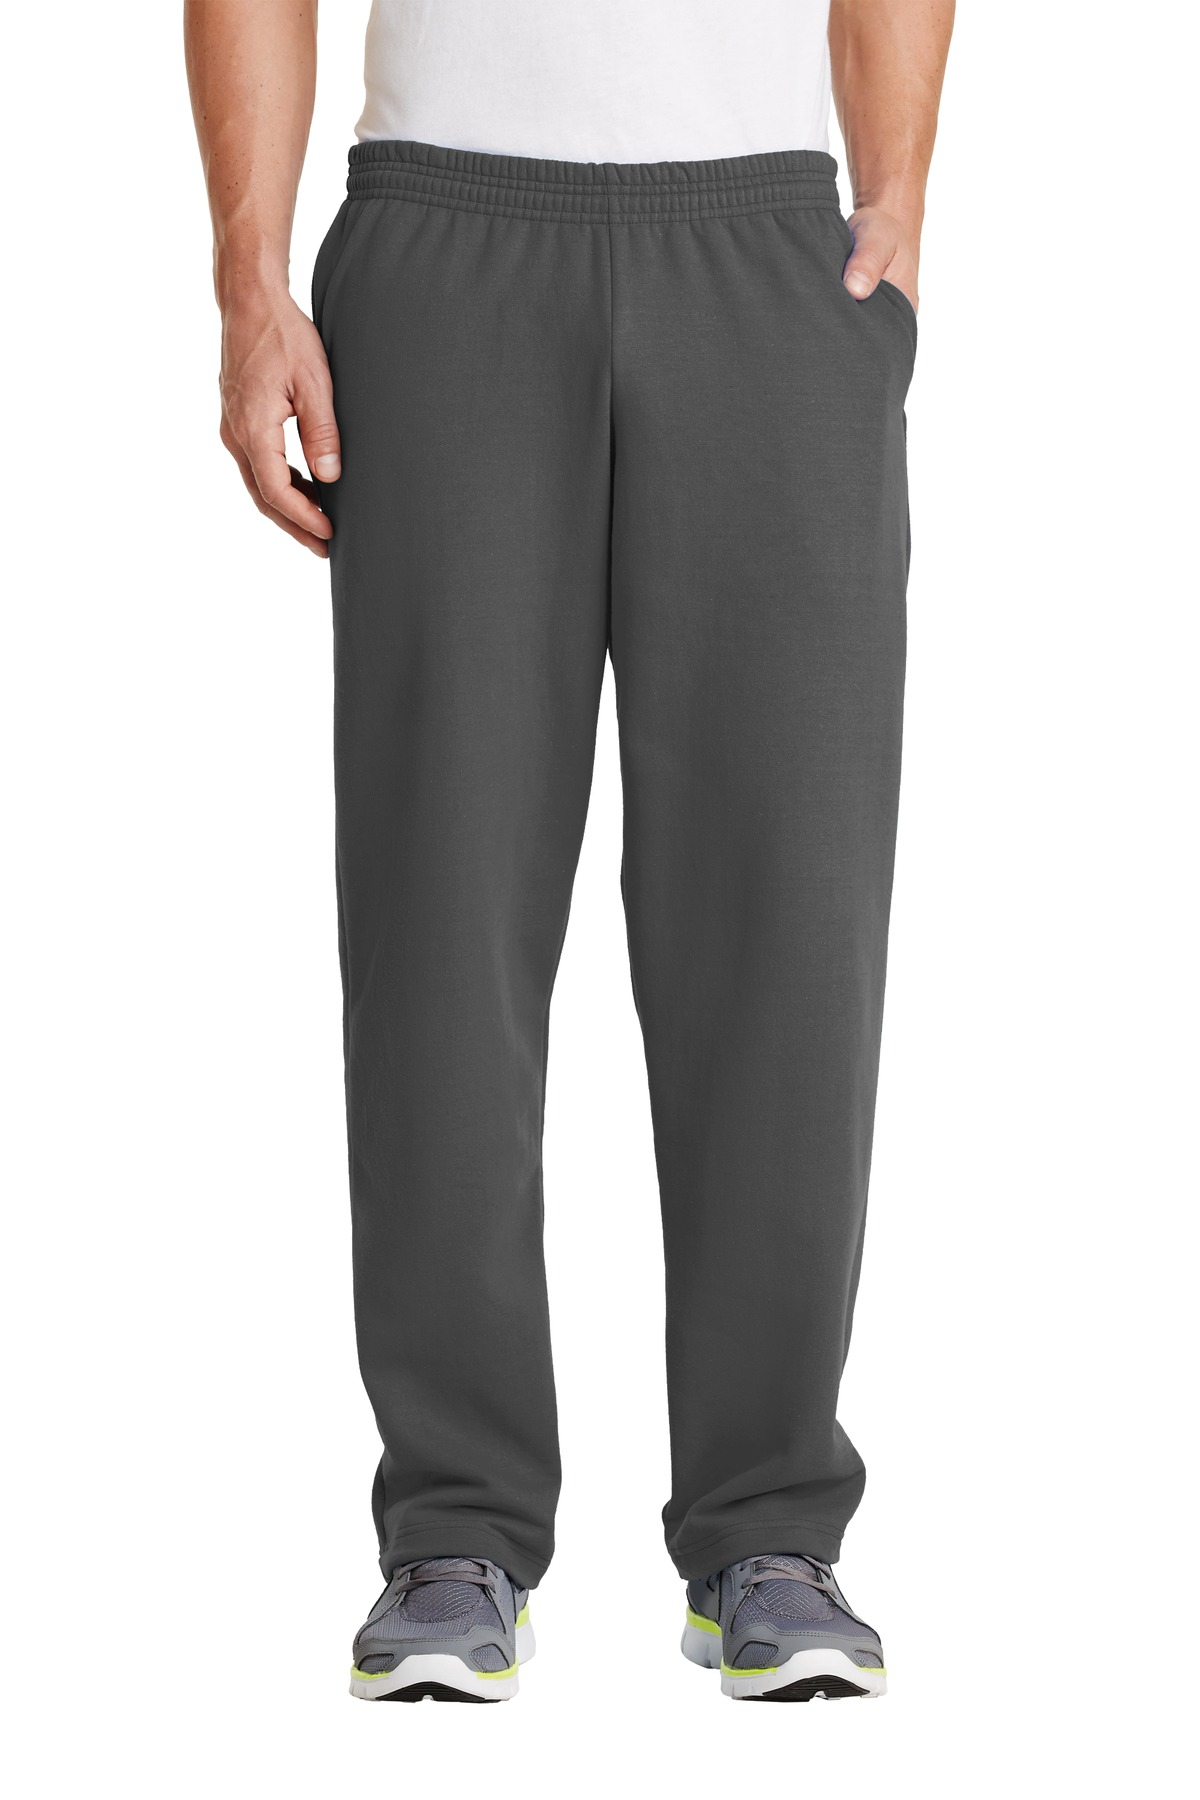 Port & Company ®  - Core Fleece Sweatpant with Pockets. PC78P - Charcoal